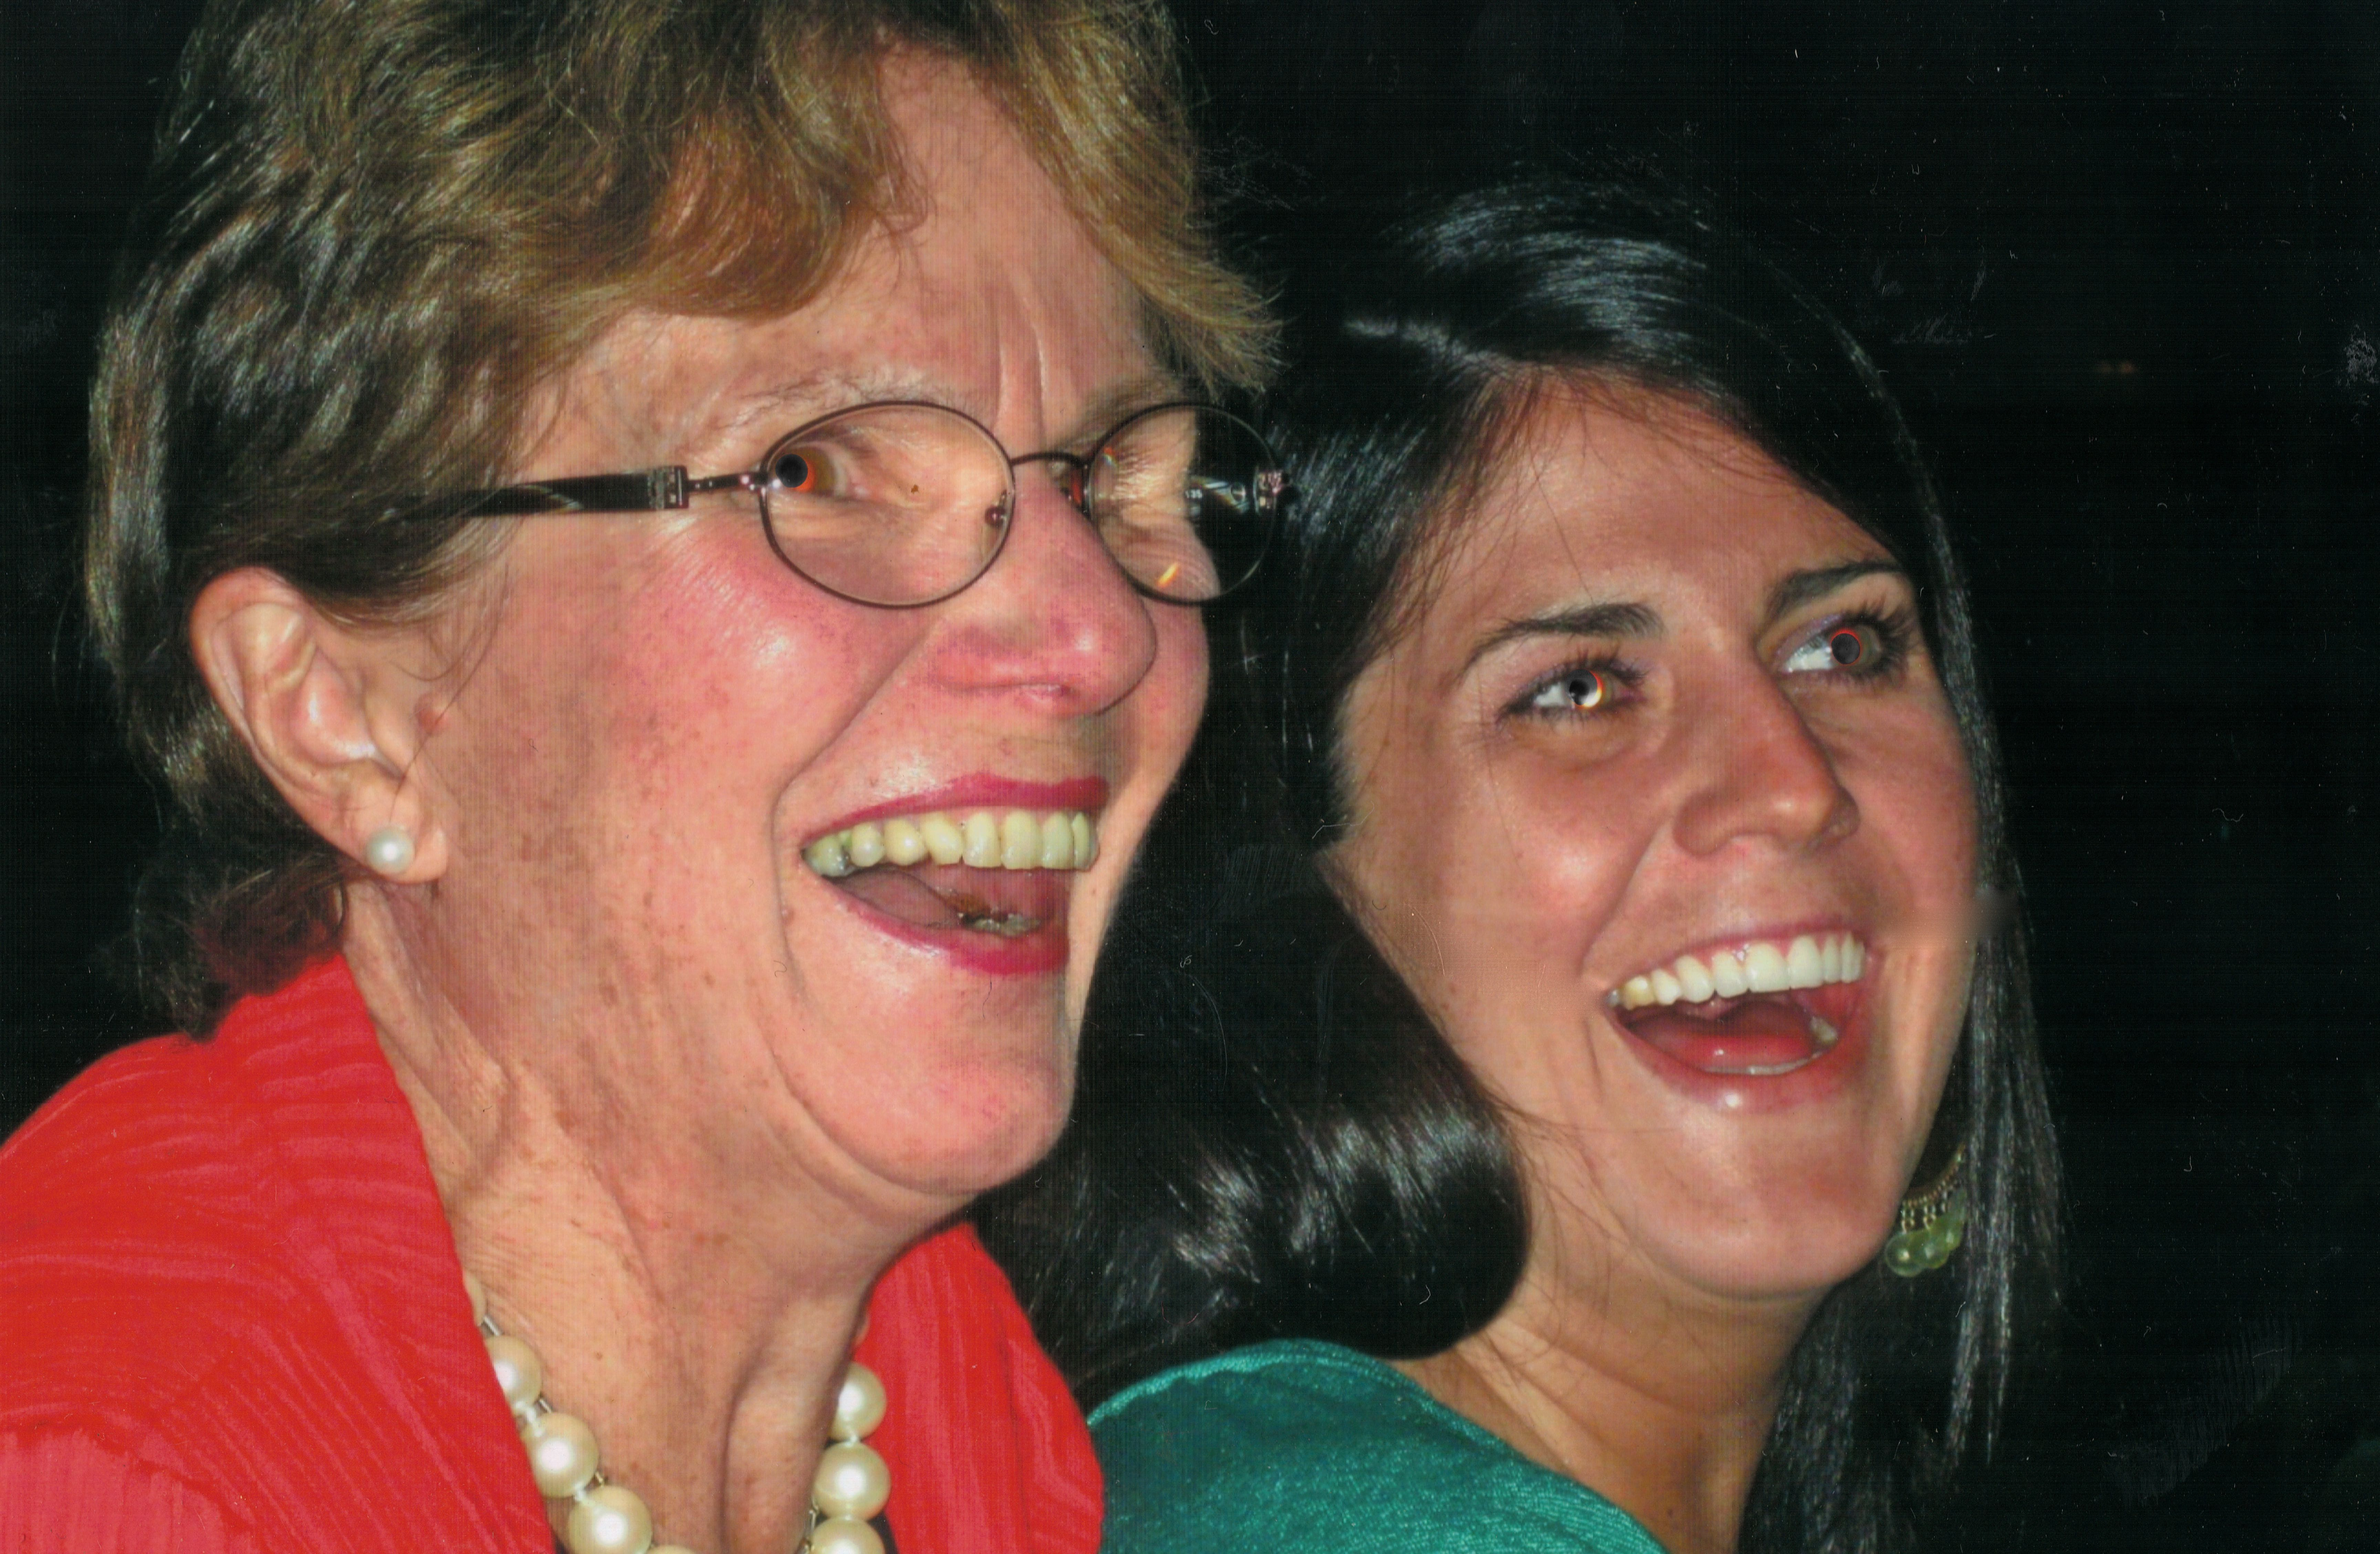 Katie C. Reilly and her mom sharing a laugh at her birthday dinner in the summer of 2008.